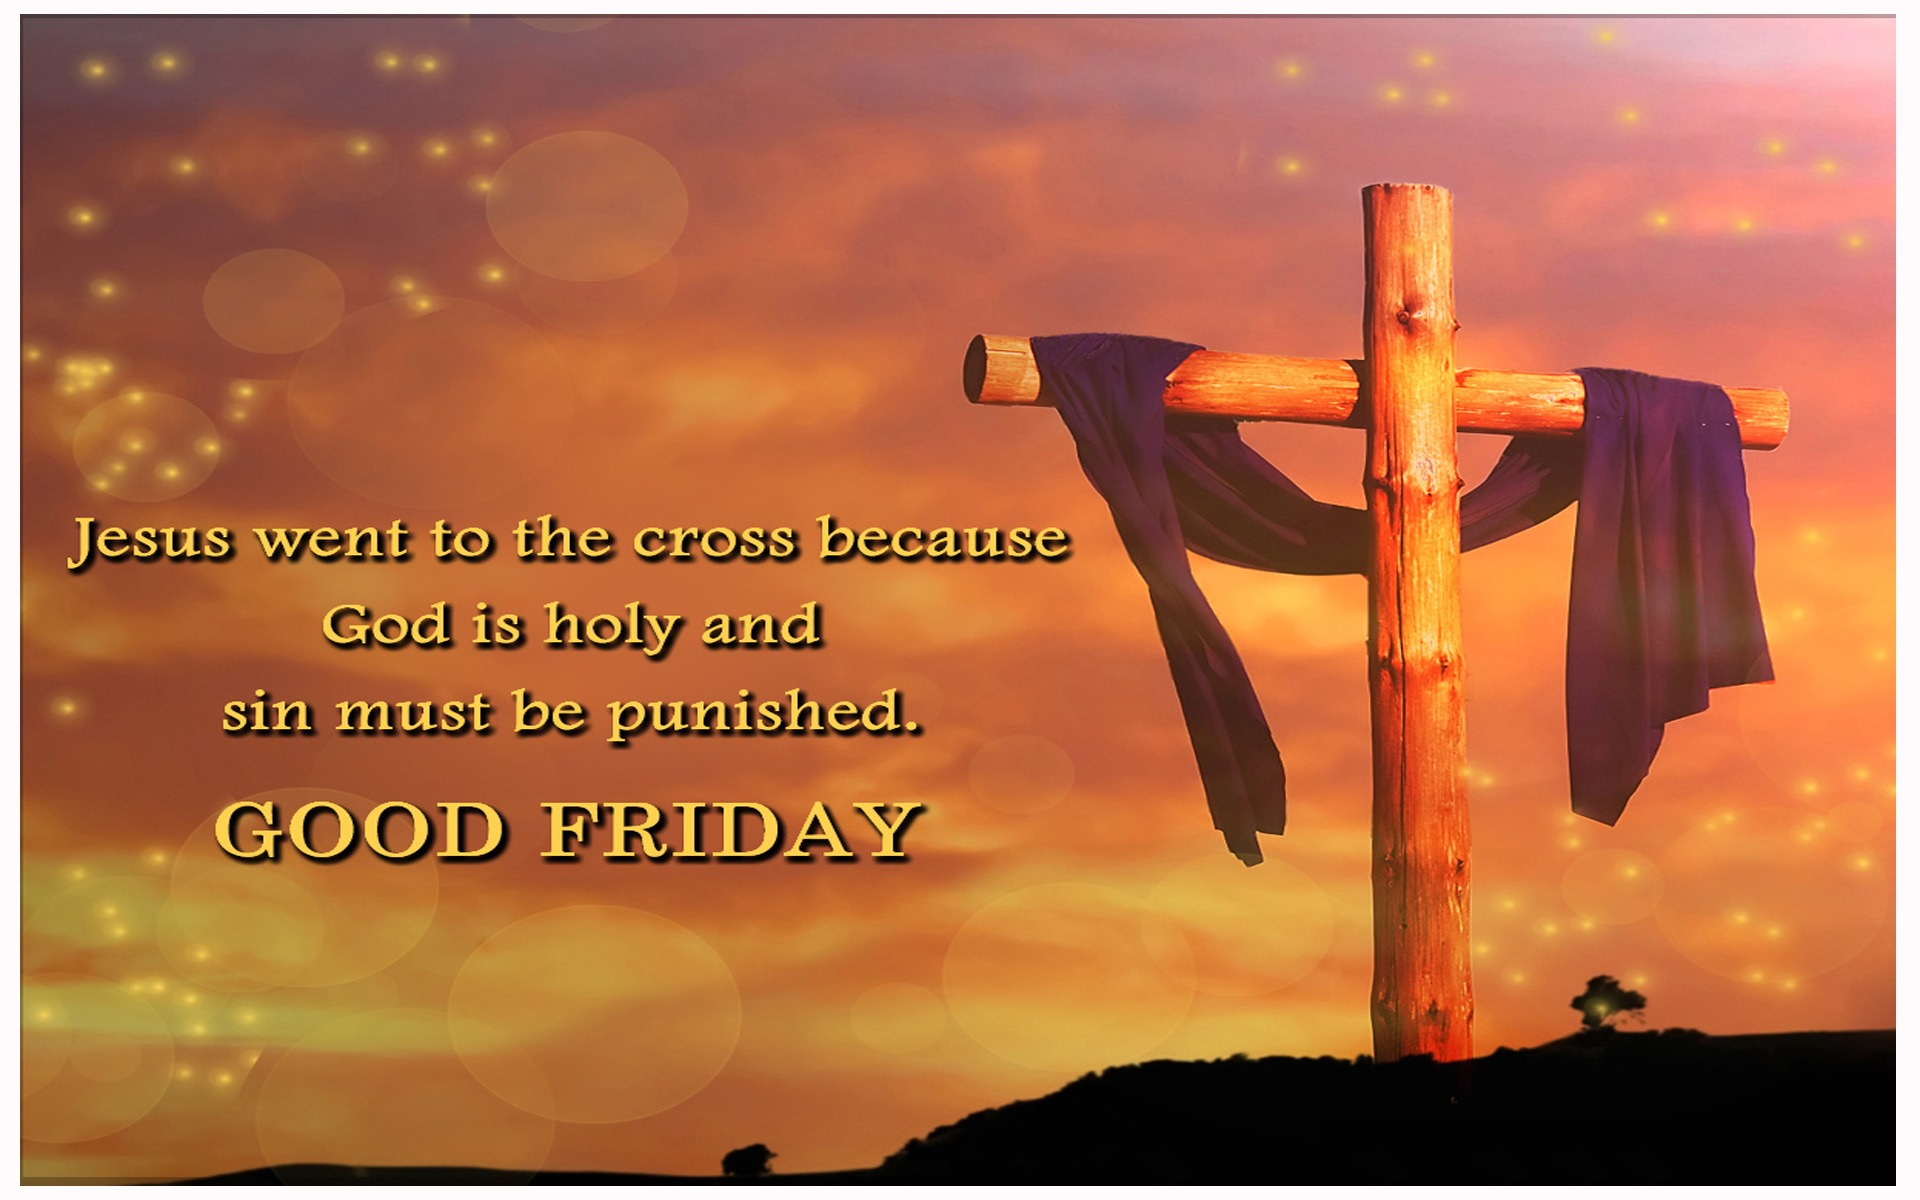 Good Friday Images Wallpapers Pictures Greetings Cards 2019